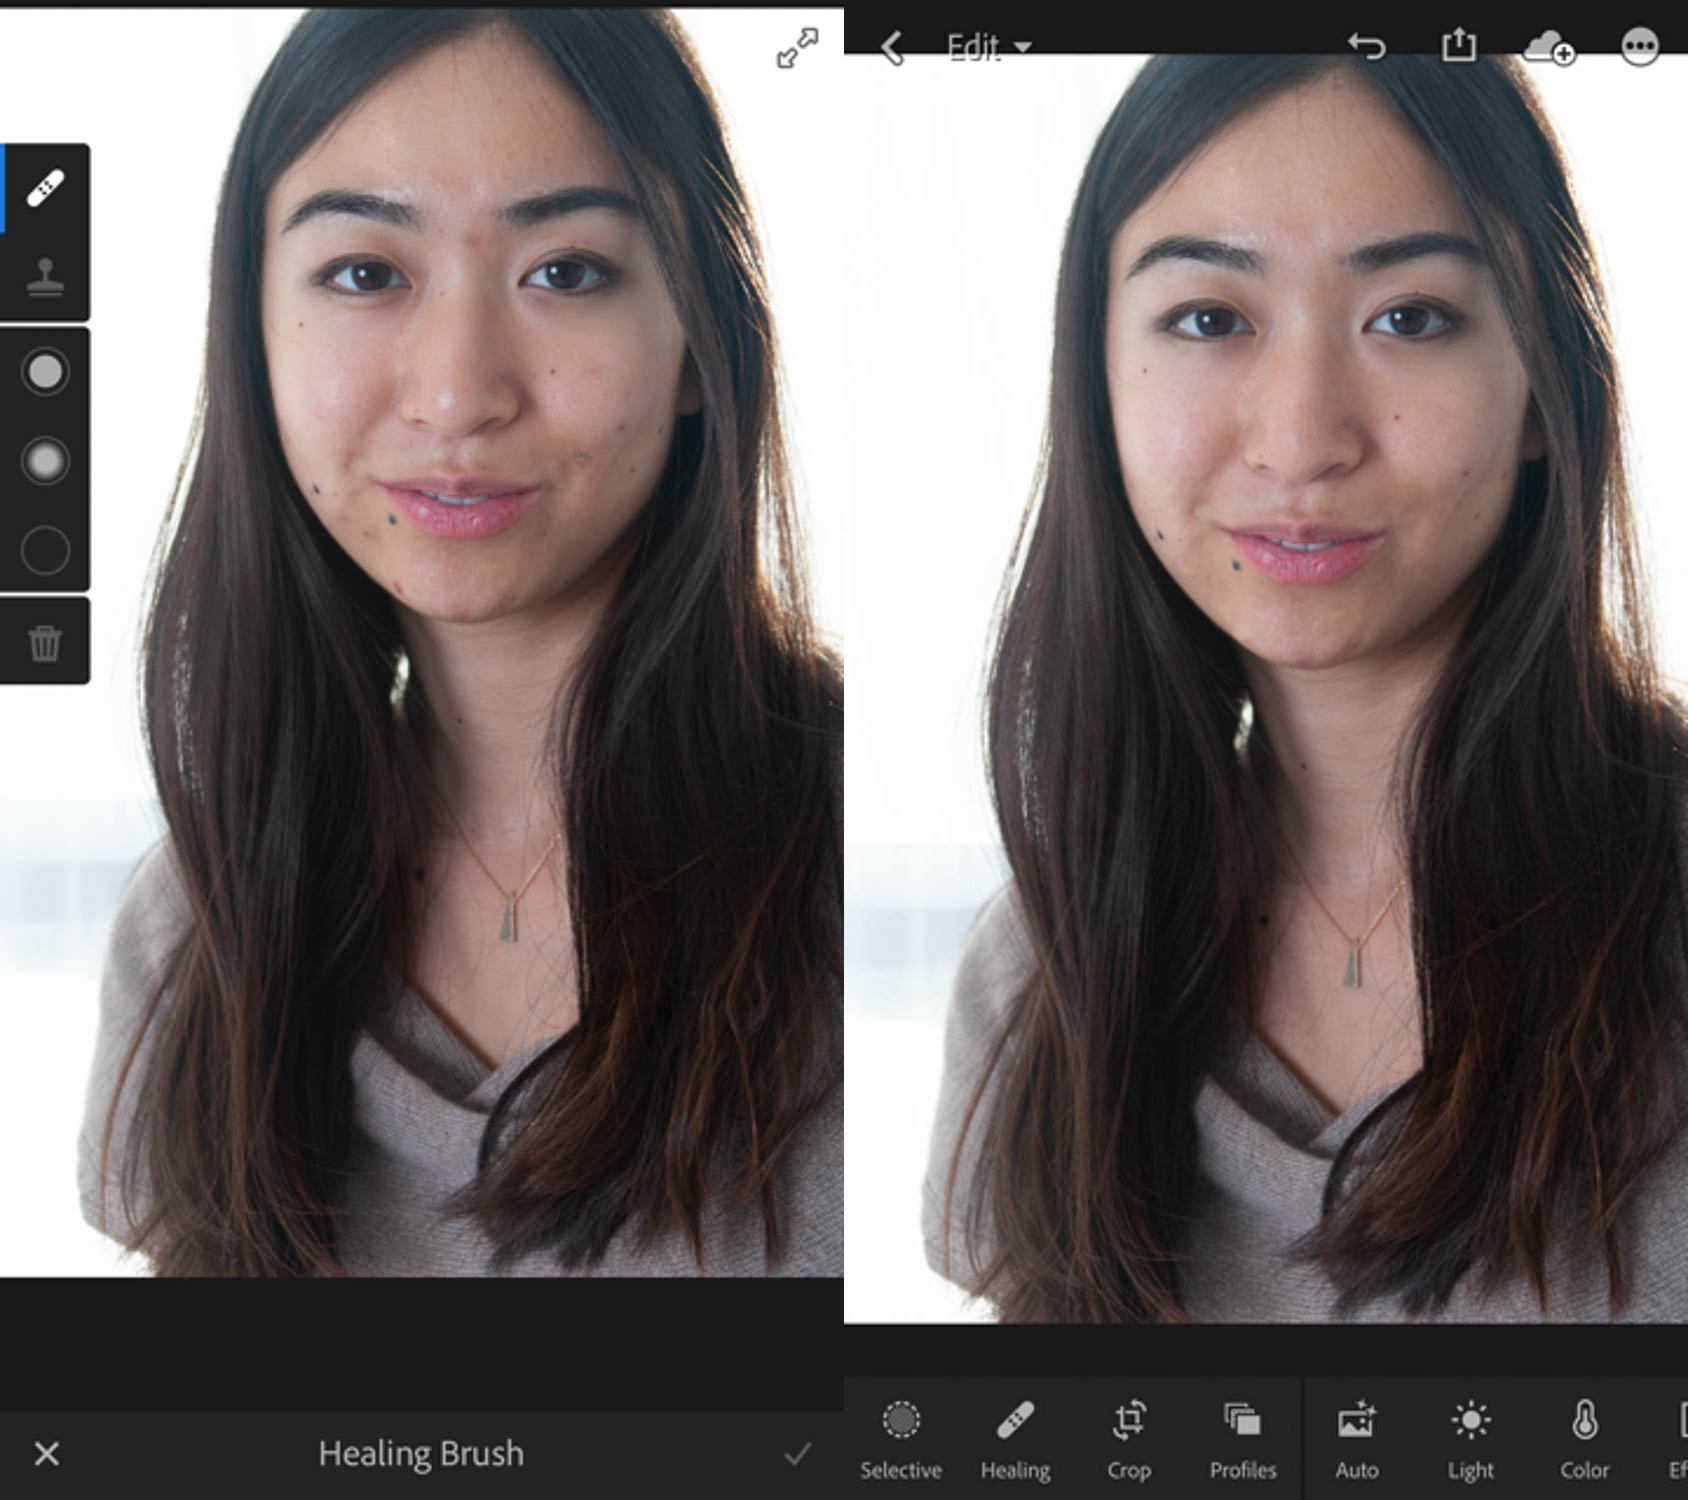 Image: Before and after images using the Healing Brush in Lightroom Mobile.